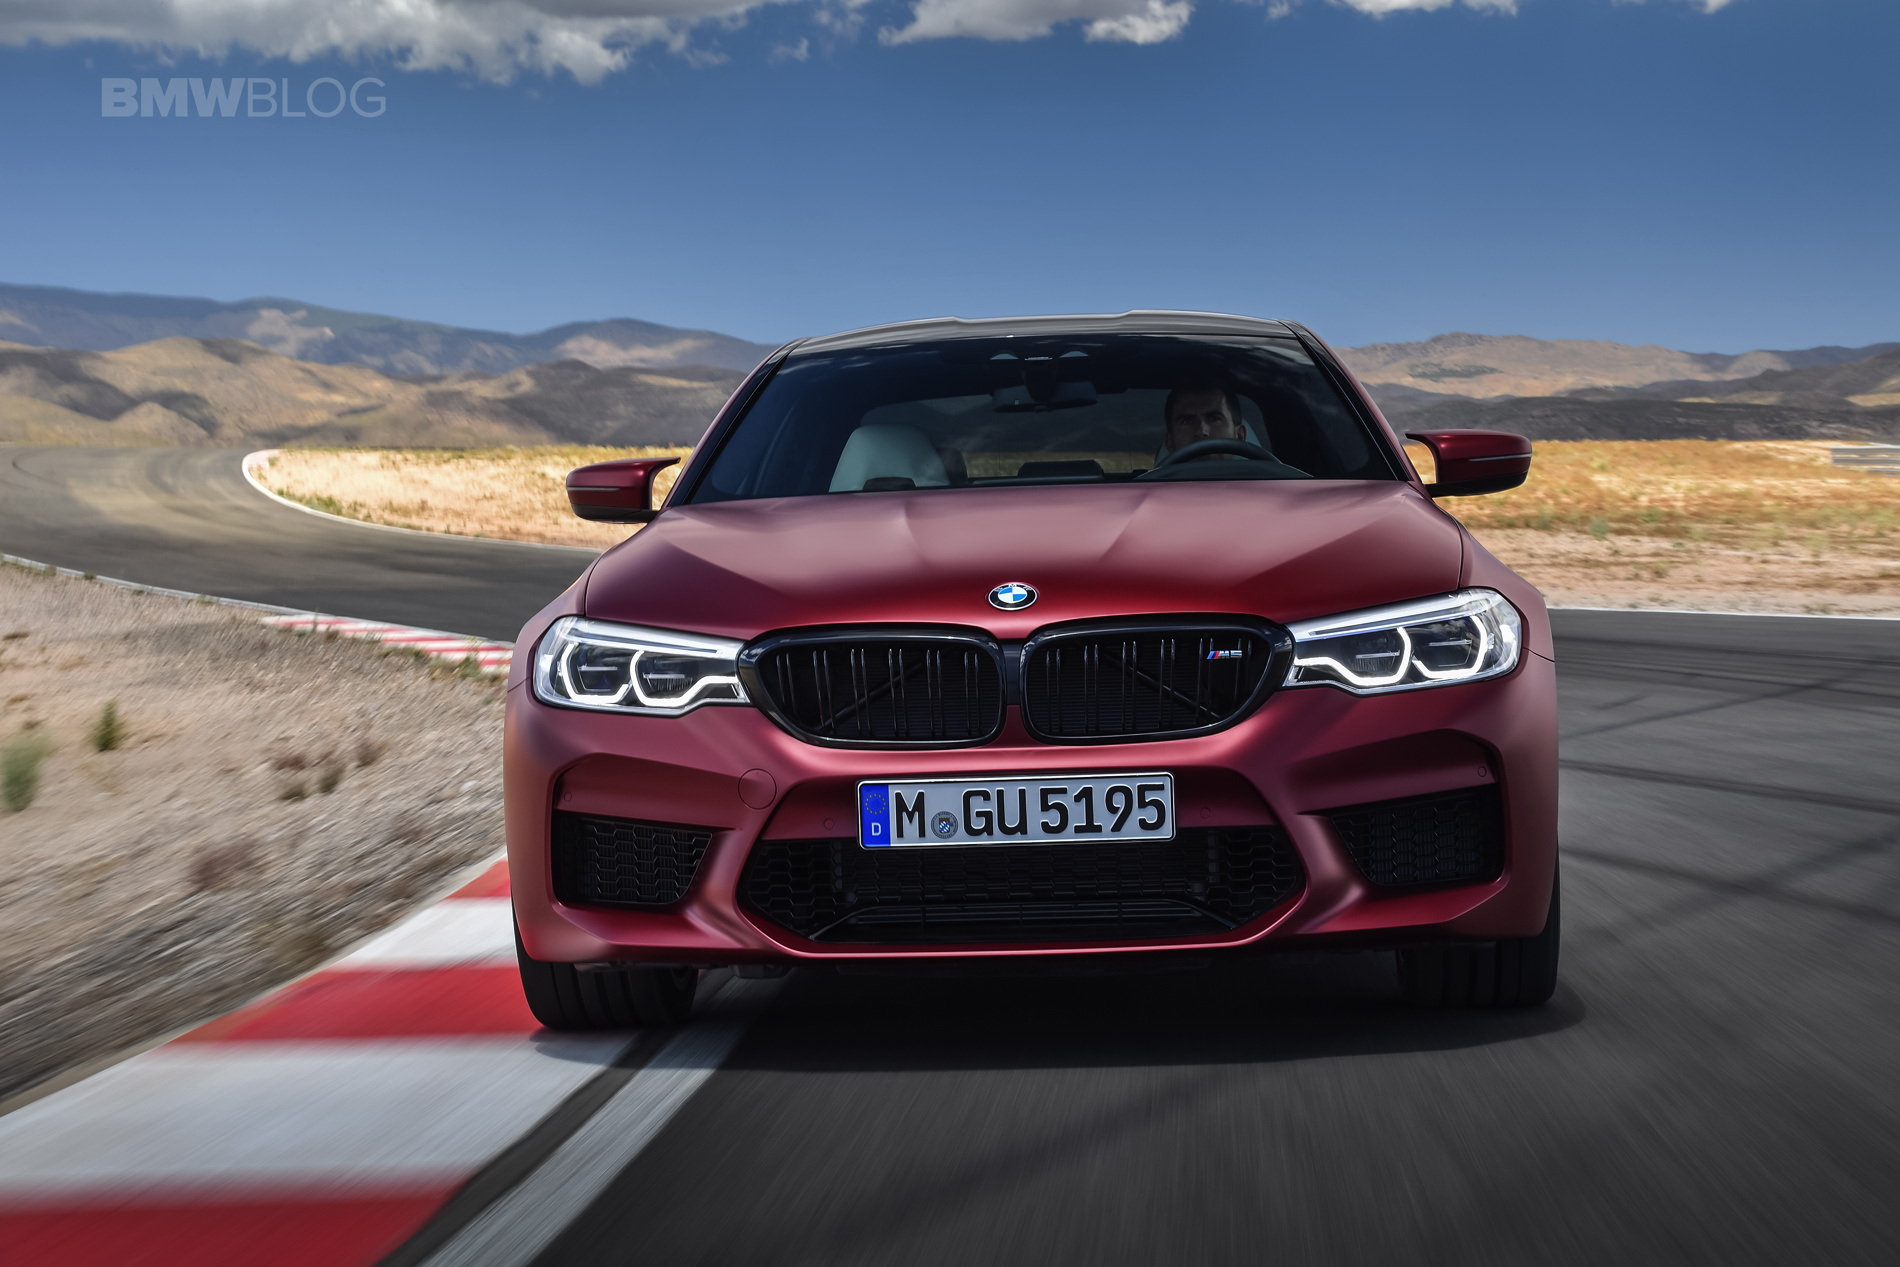 2018 BMW M5 Frozen Dark Red Metallic 01